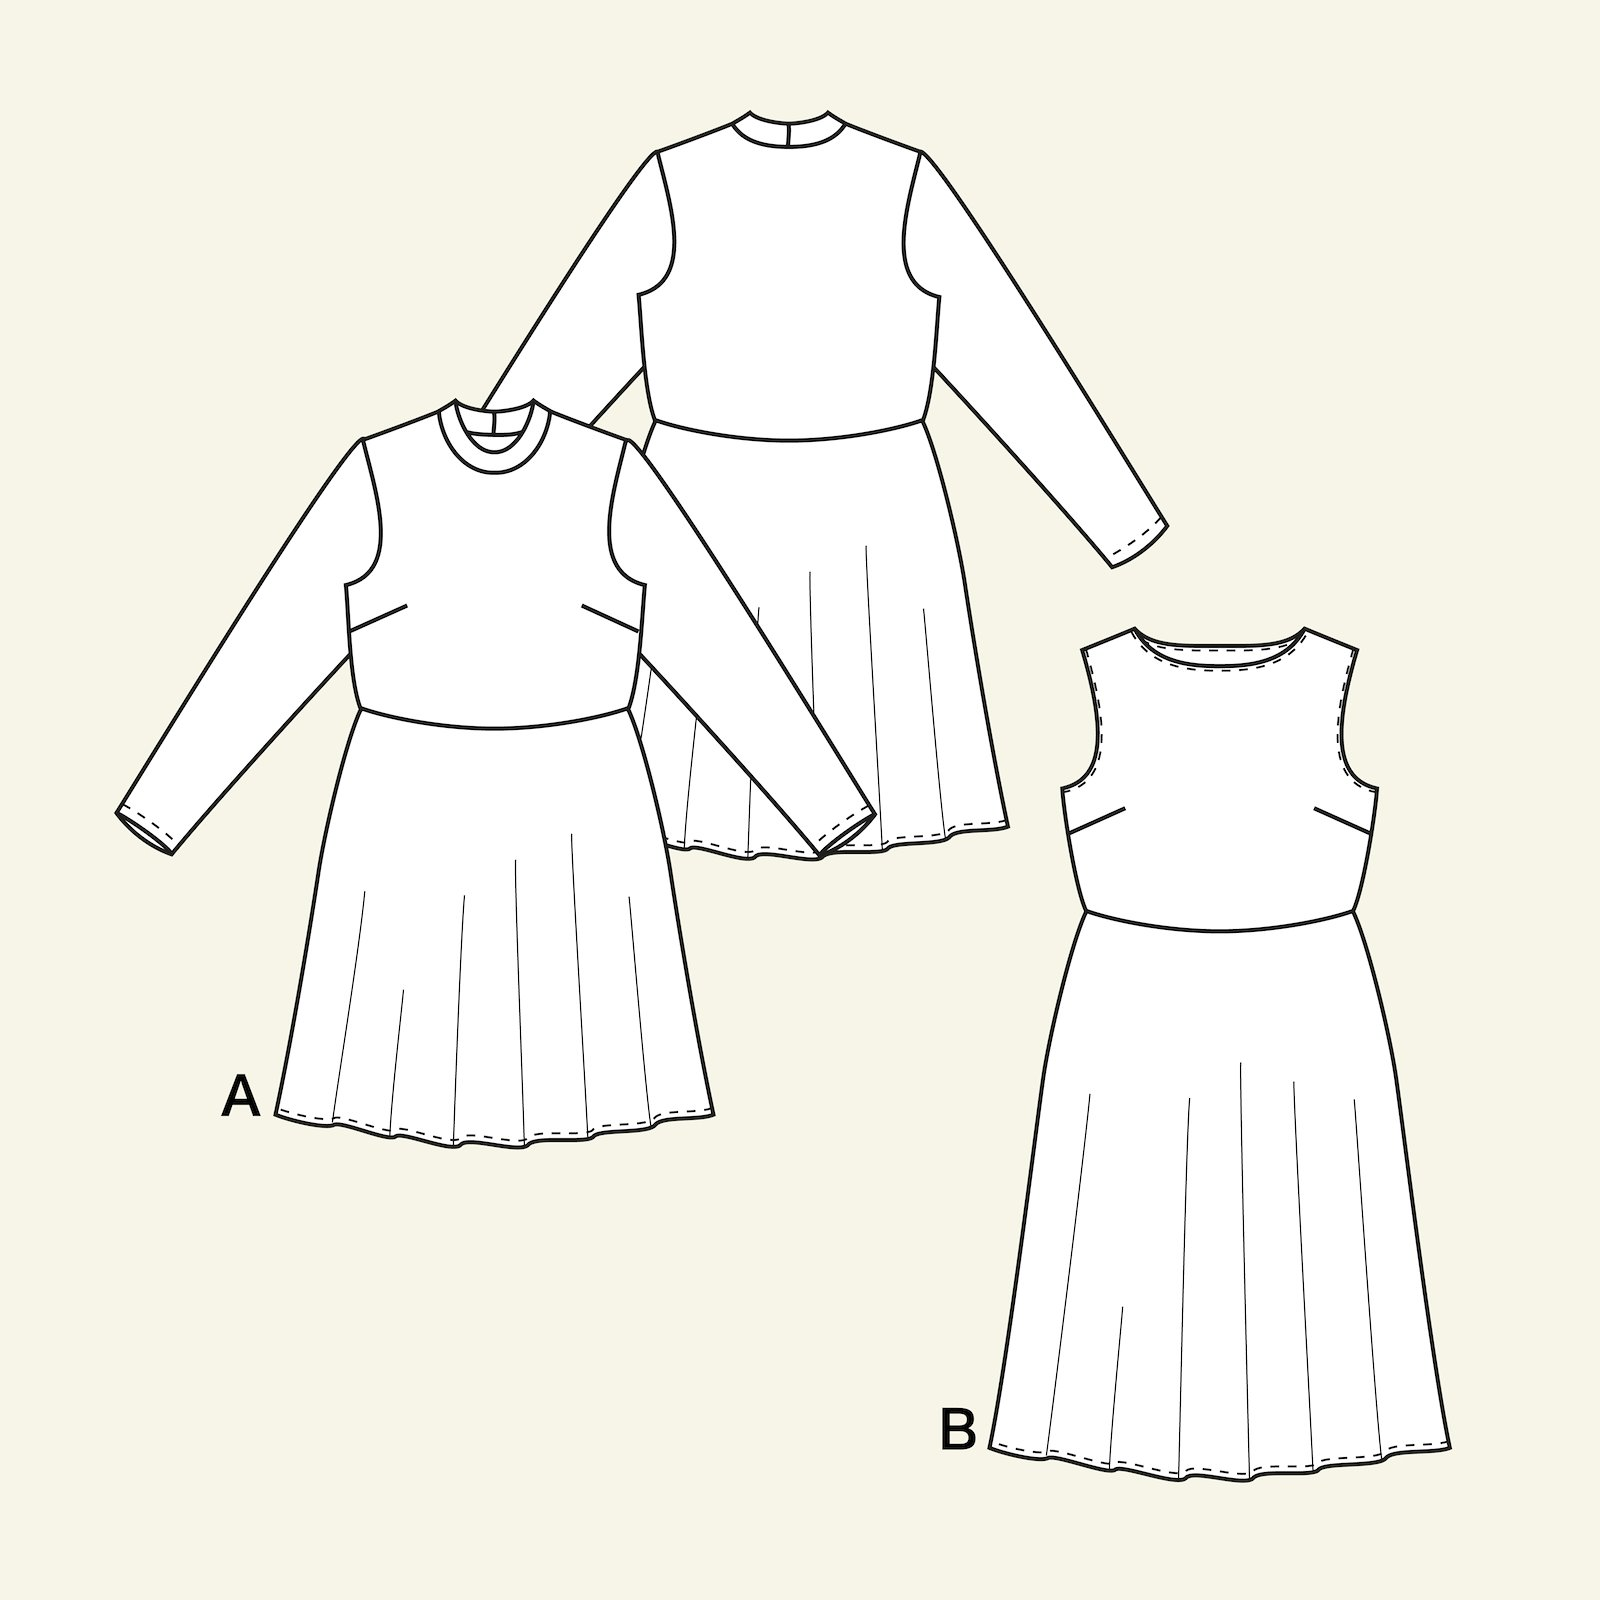 Dress with a full skirt, 46/18 p23154_pack